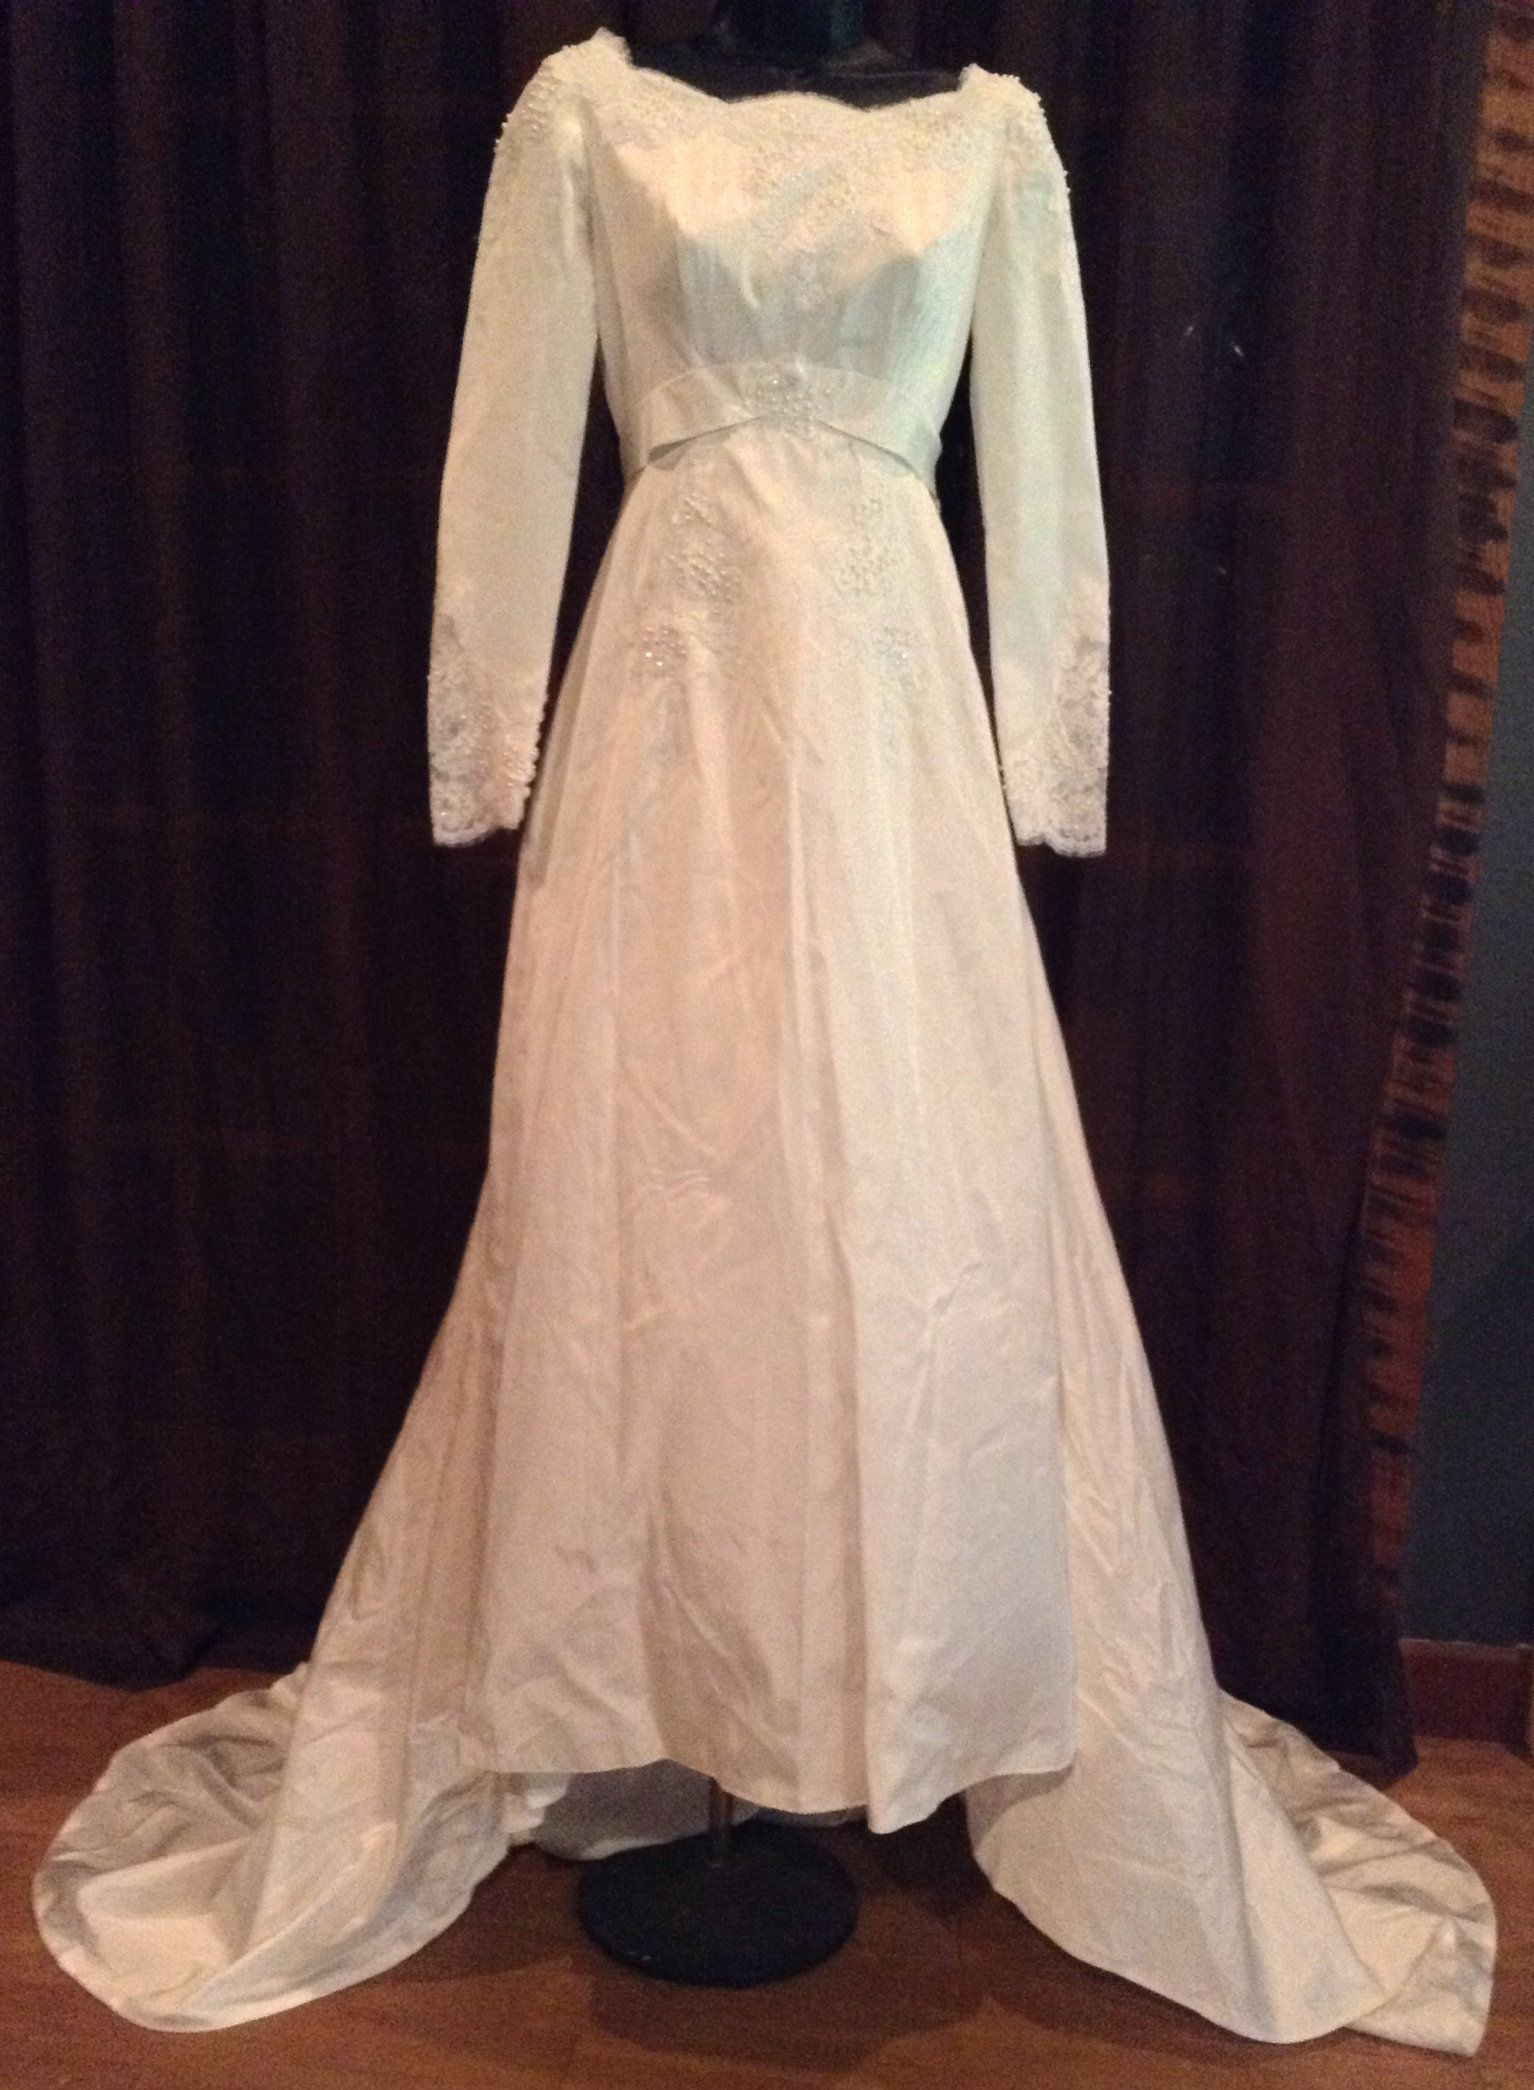 Size 6 wedding dress  Vintage Wedding Dress White Petite Sheath Empire Waist Long Sleeves